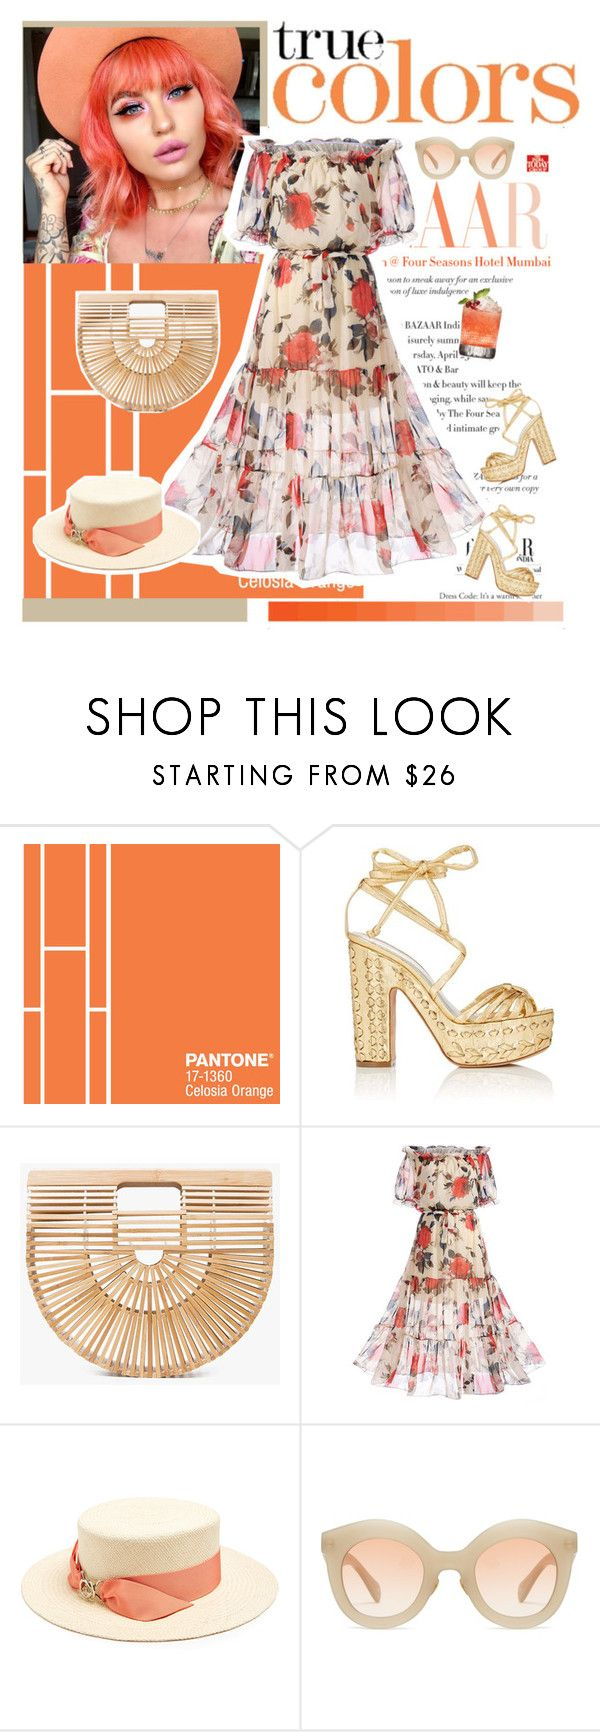 """""""Garden Party"""" by style-stories ❤ liked on Polyvore featuring Alchimia Di Ballin, Cult Gaia, WithChic, Federica Moretti and Kaleos"""